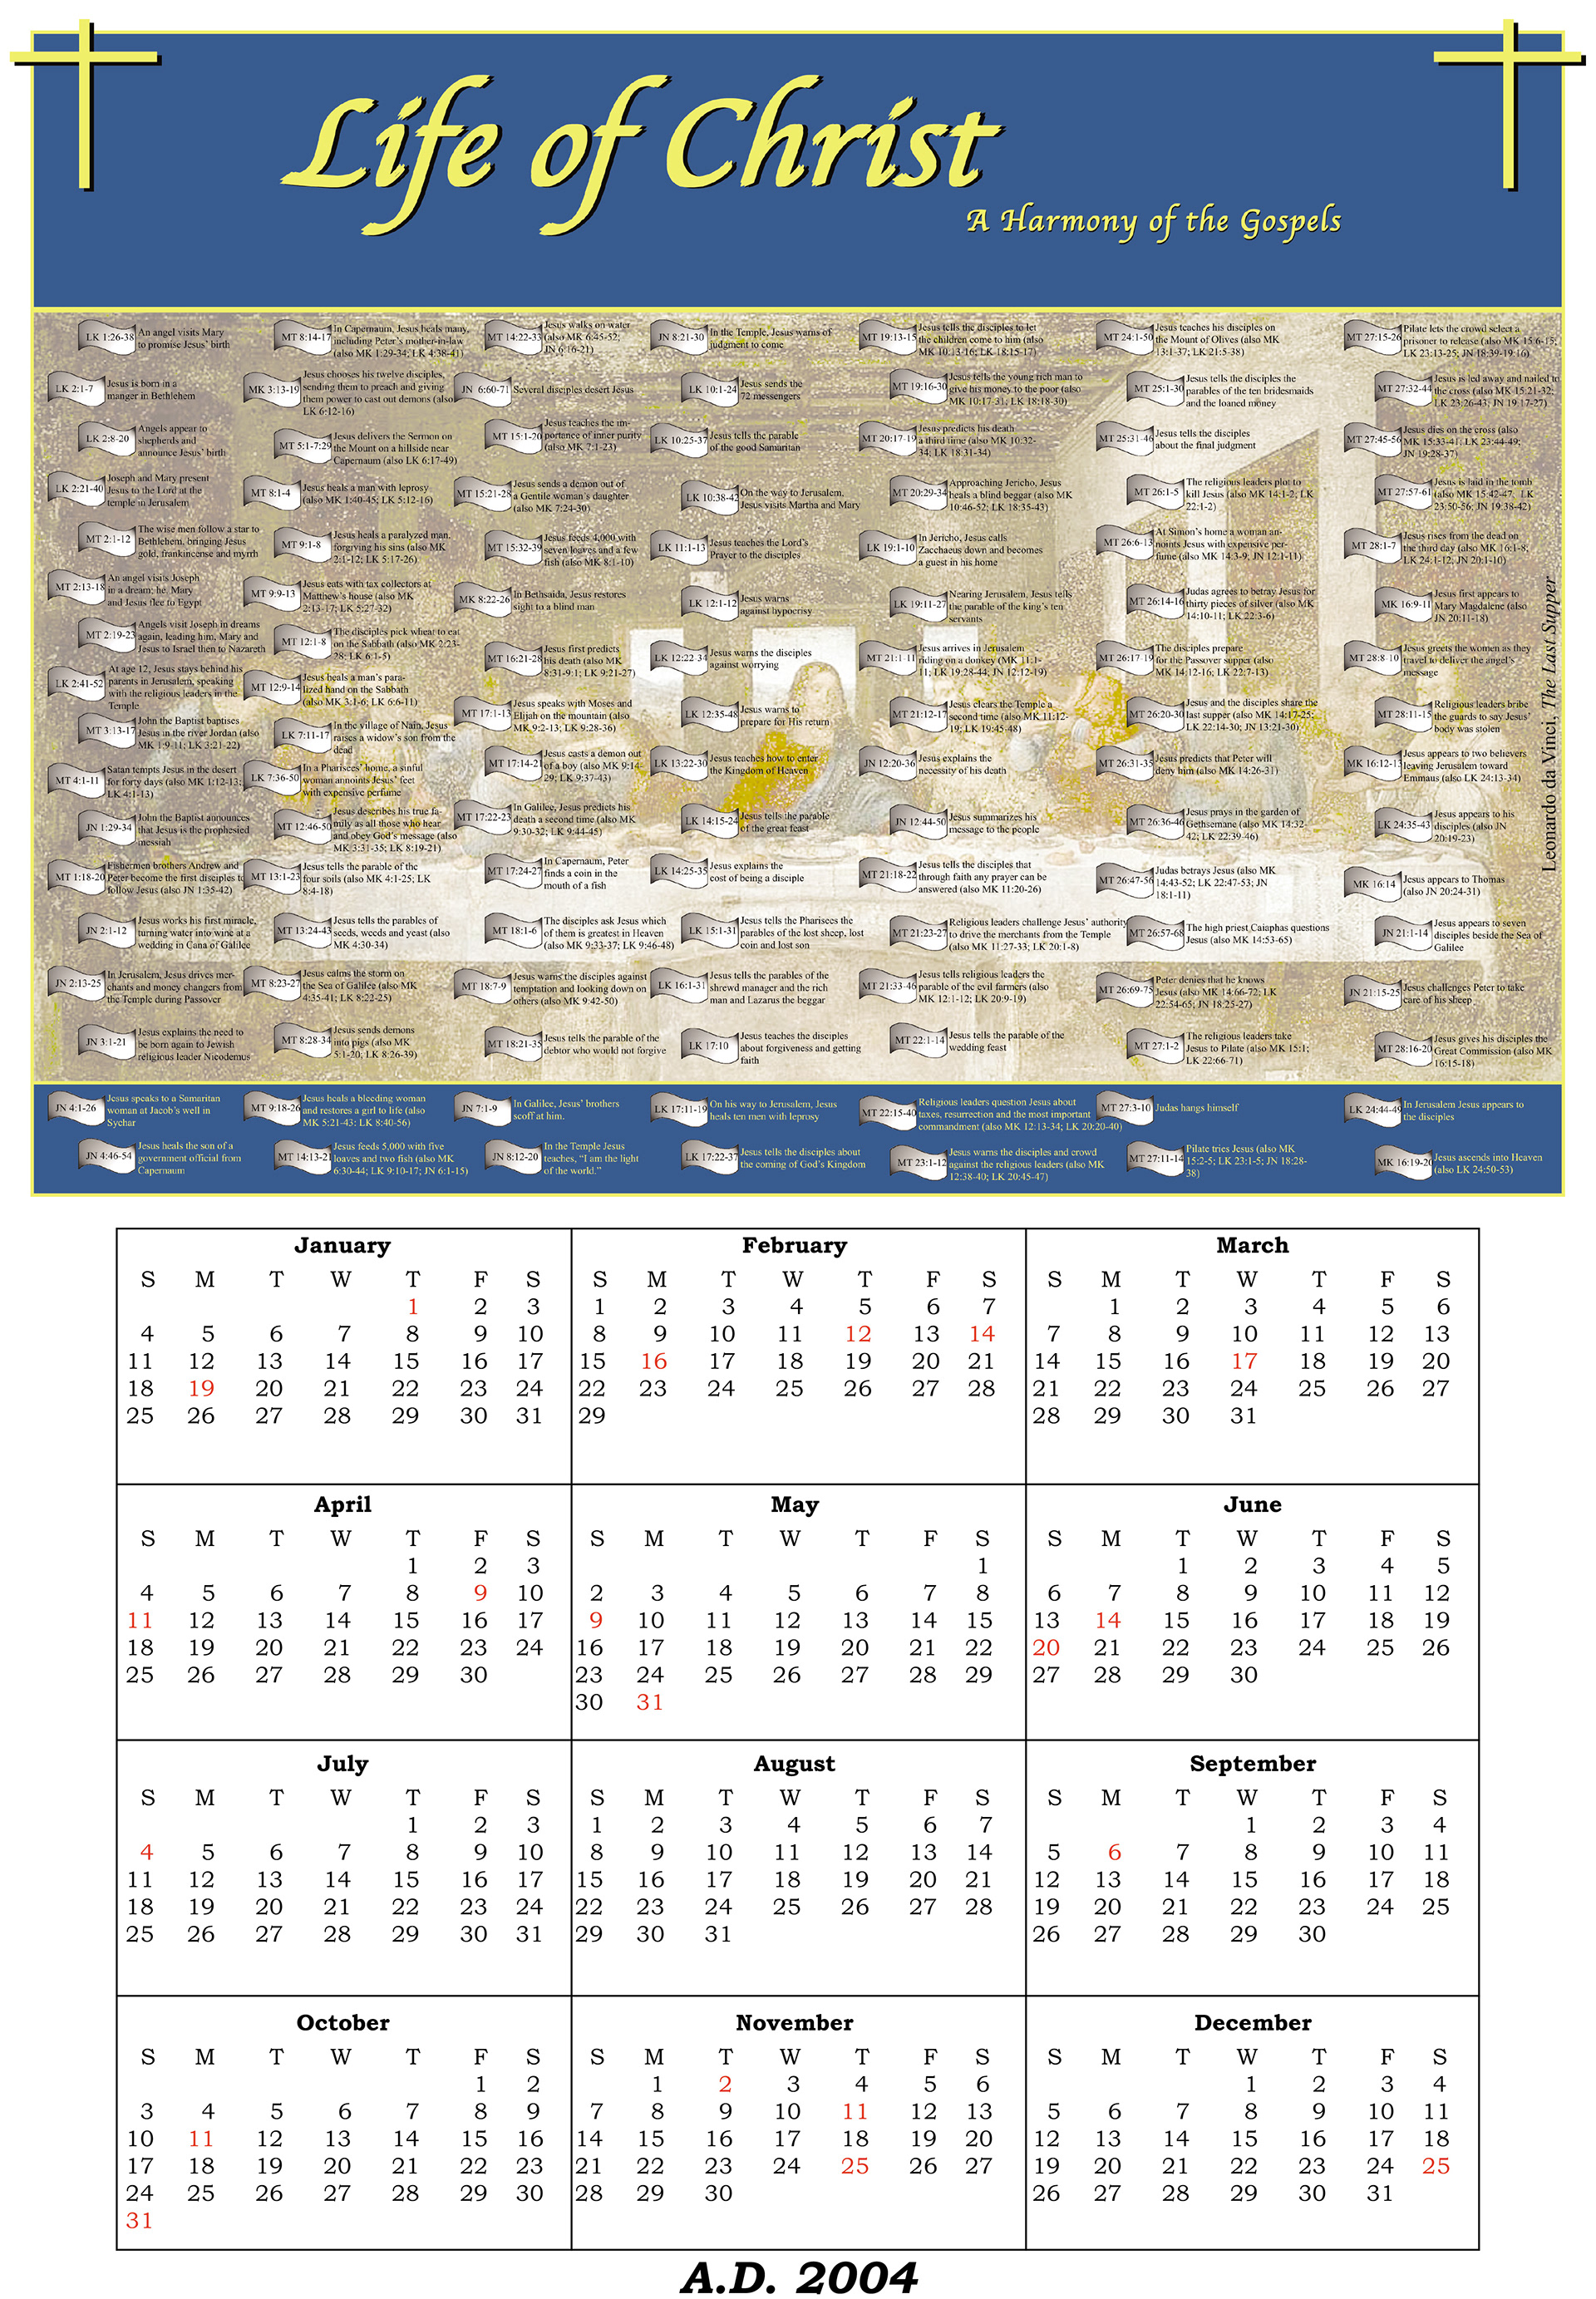 Jim Kestner - Design Sample - Life of Christ Calendar